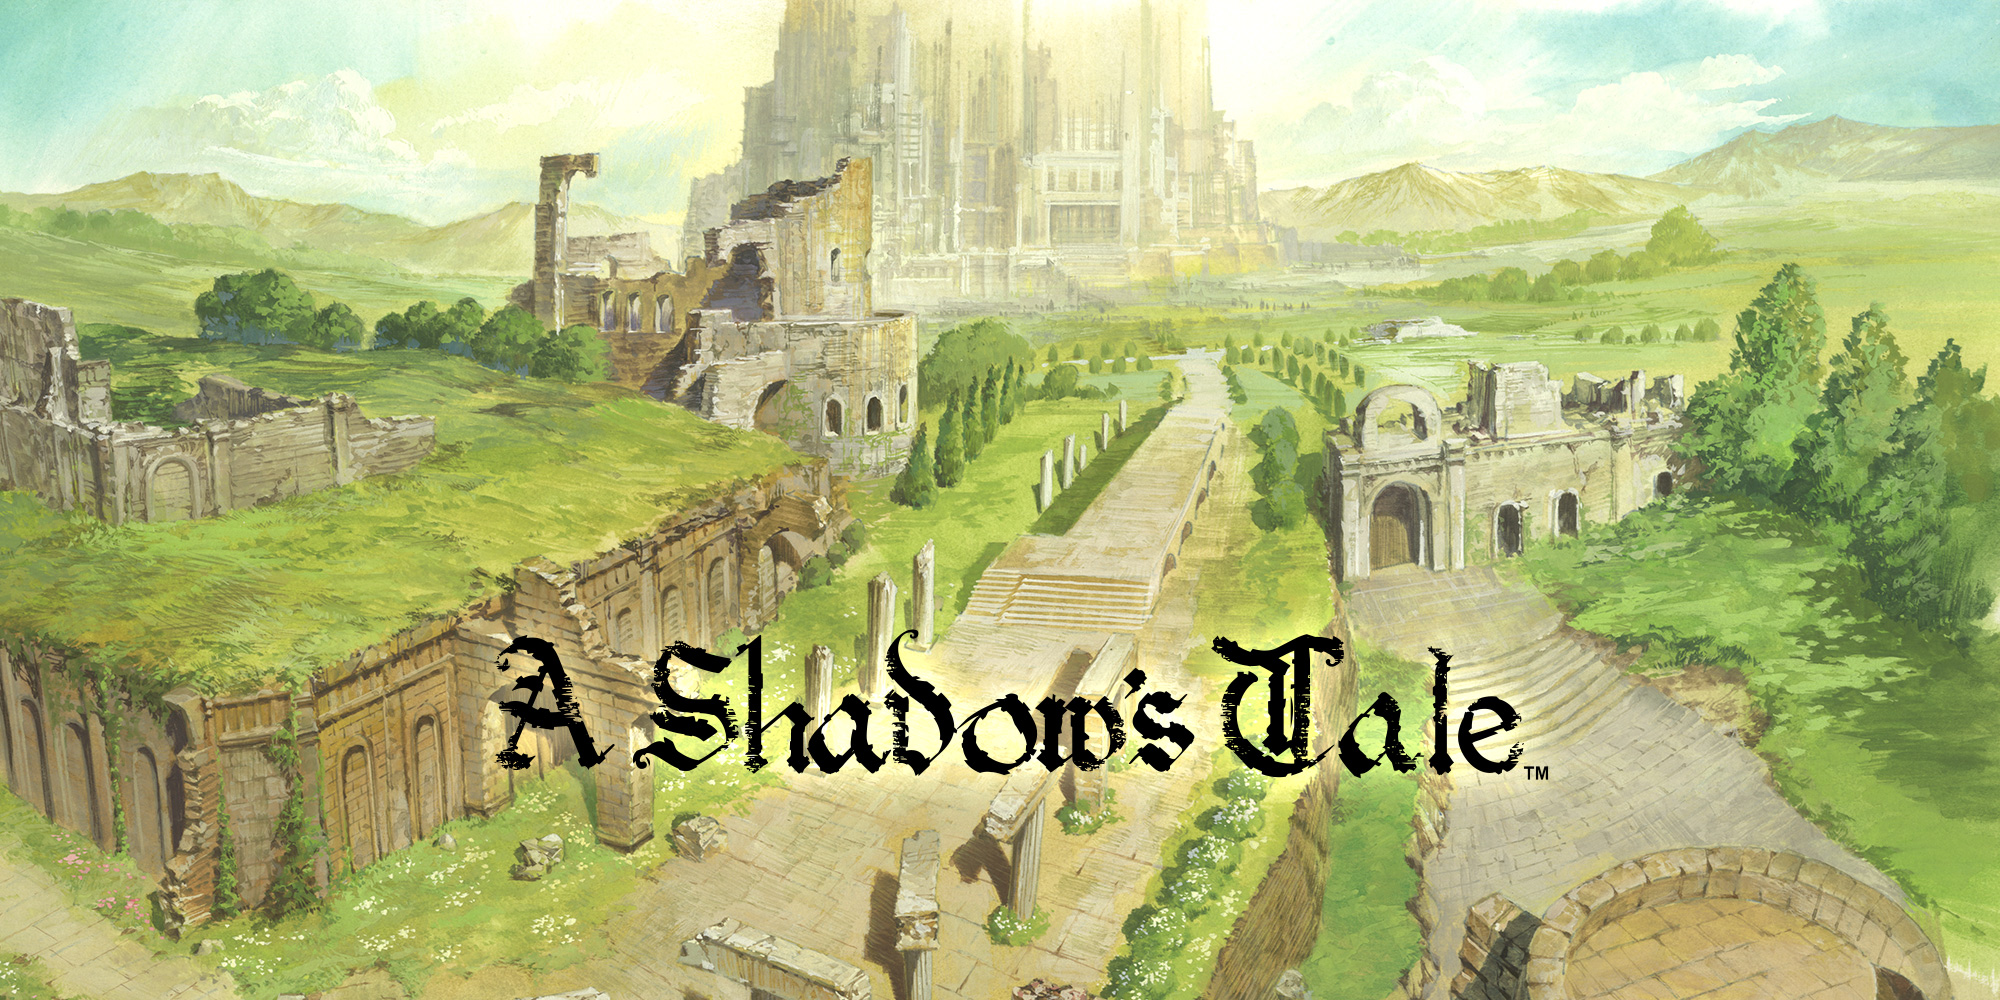 Behind the scenes of A Shadow's Tale for Wii